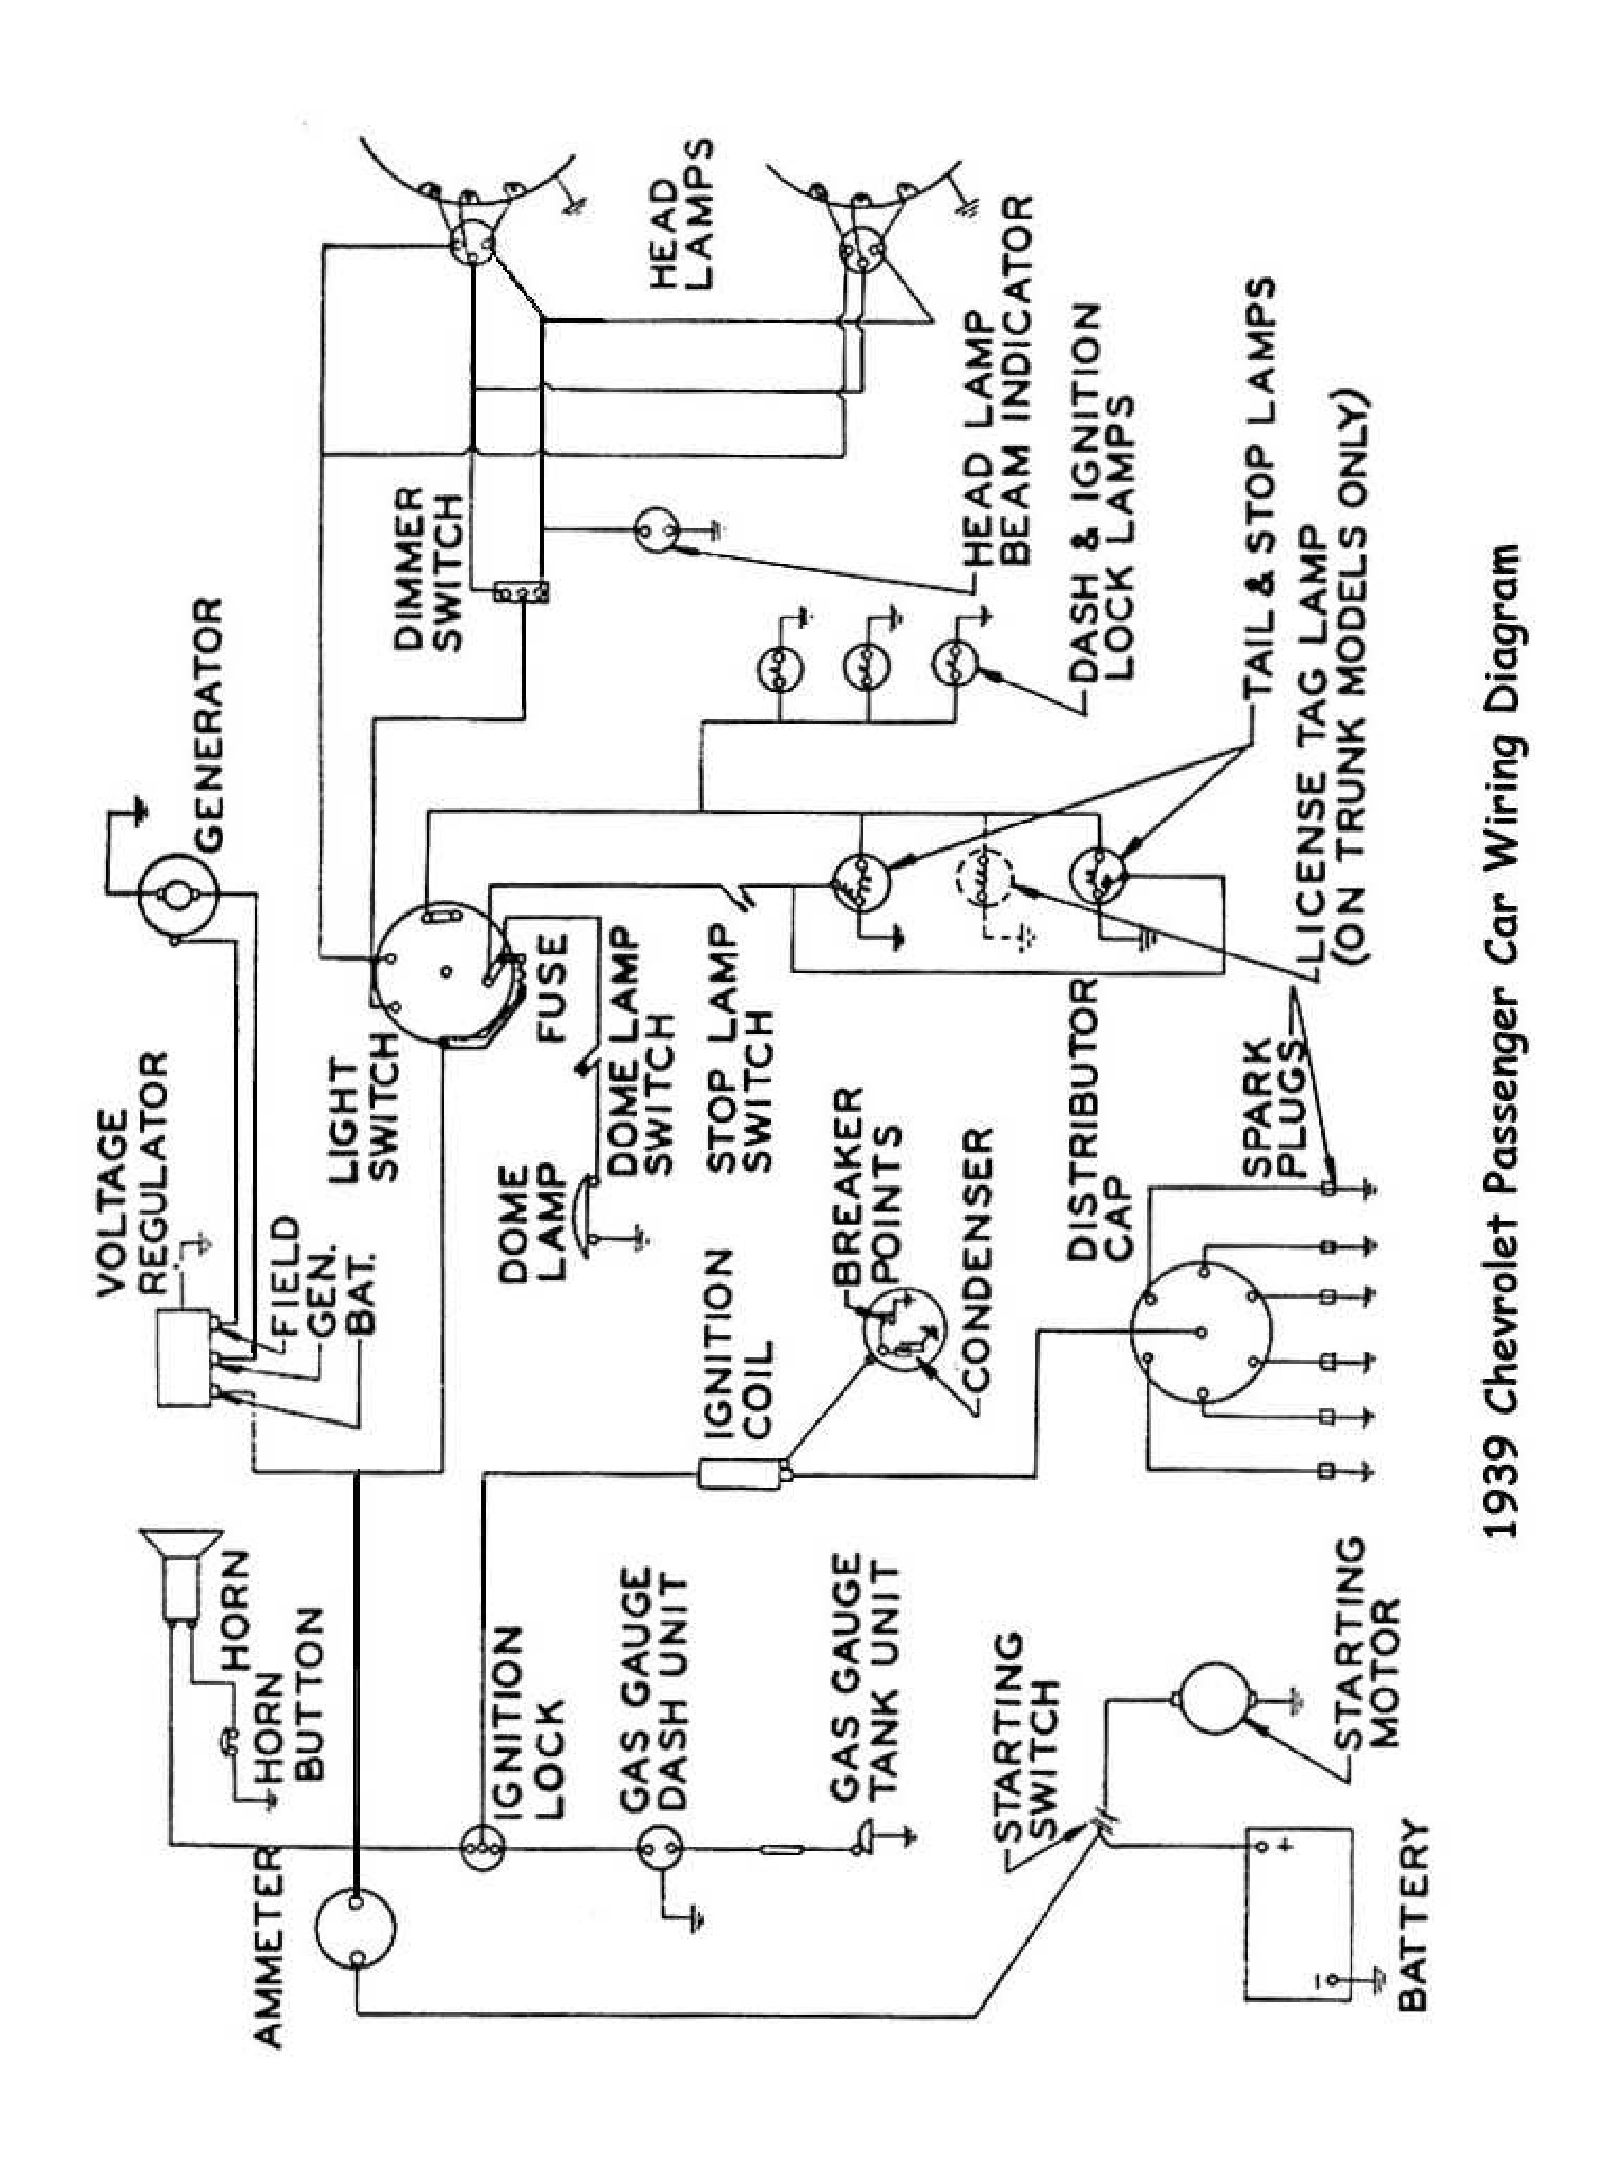 39car chevy wiring diagrams 2003 Silverado Radio Wiring Harness at edmiracle.co